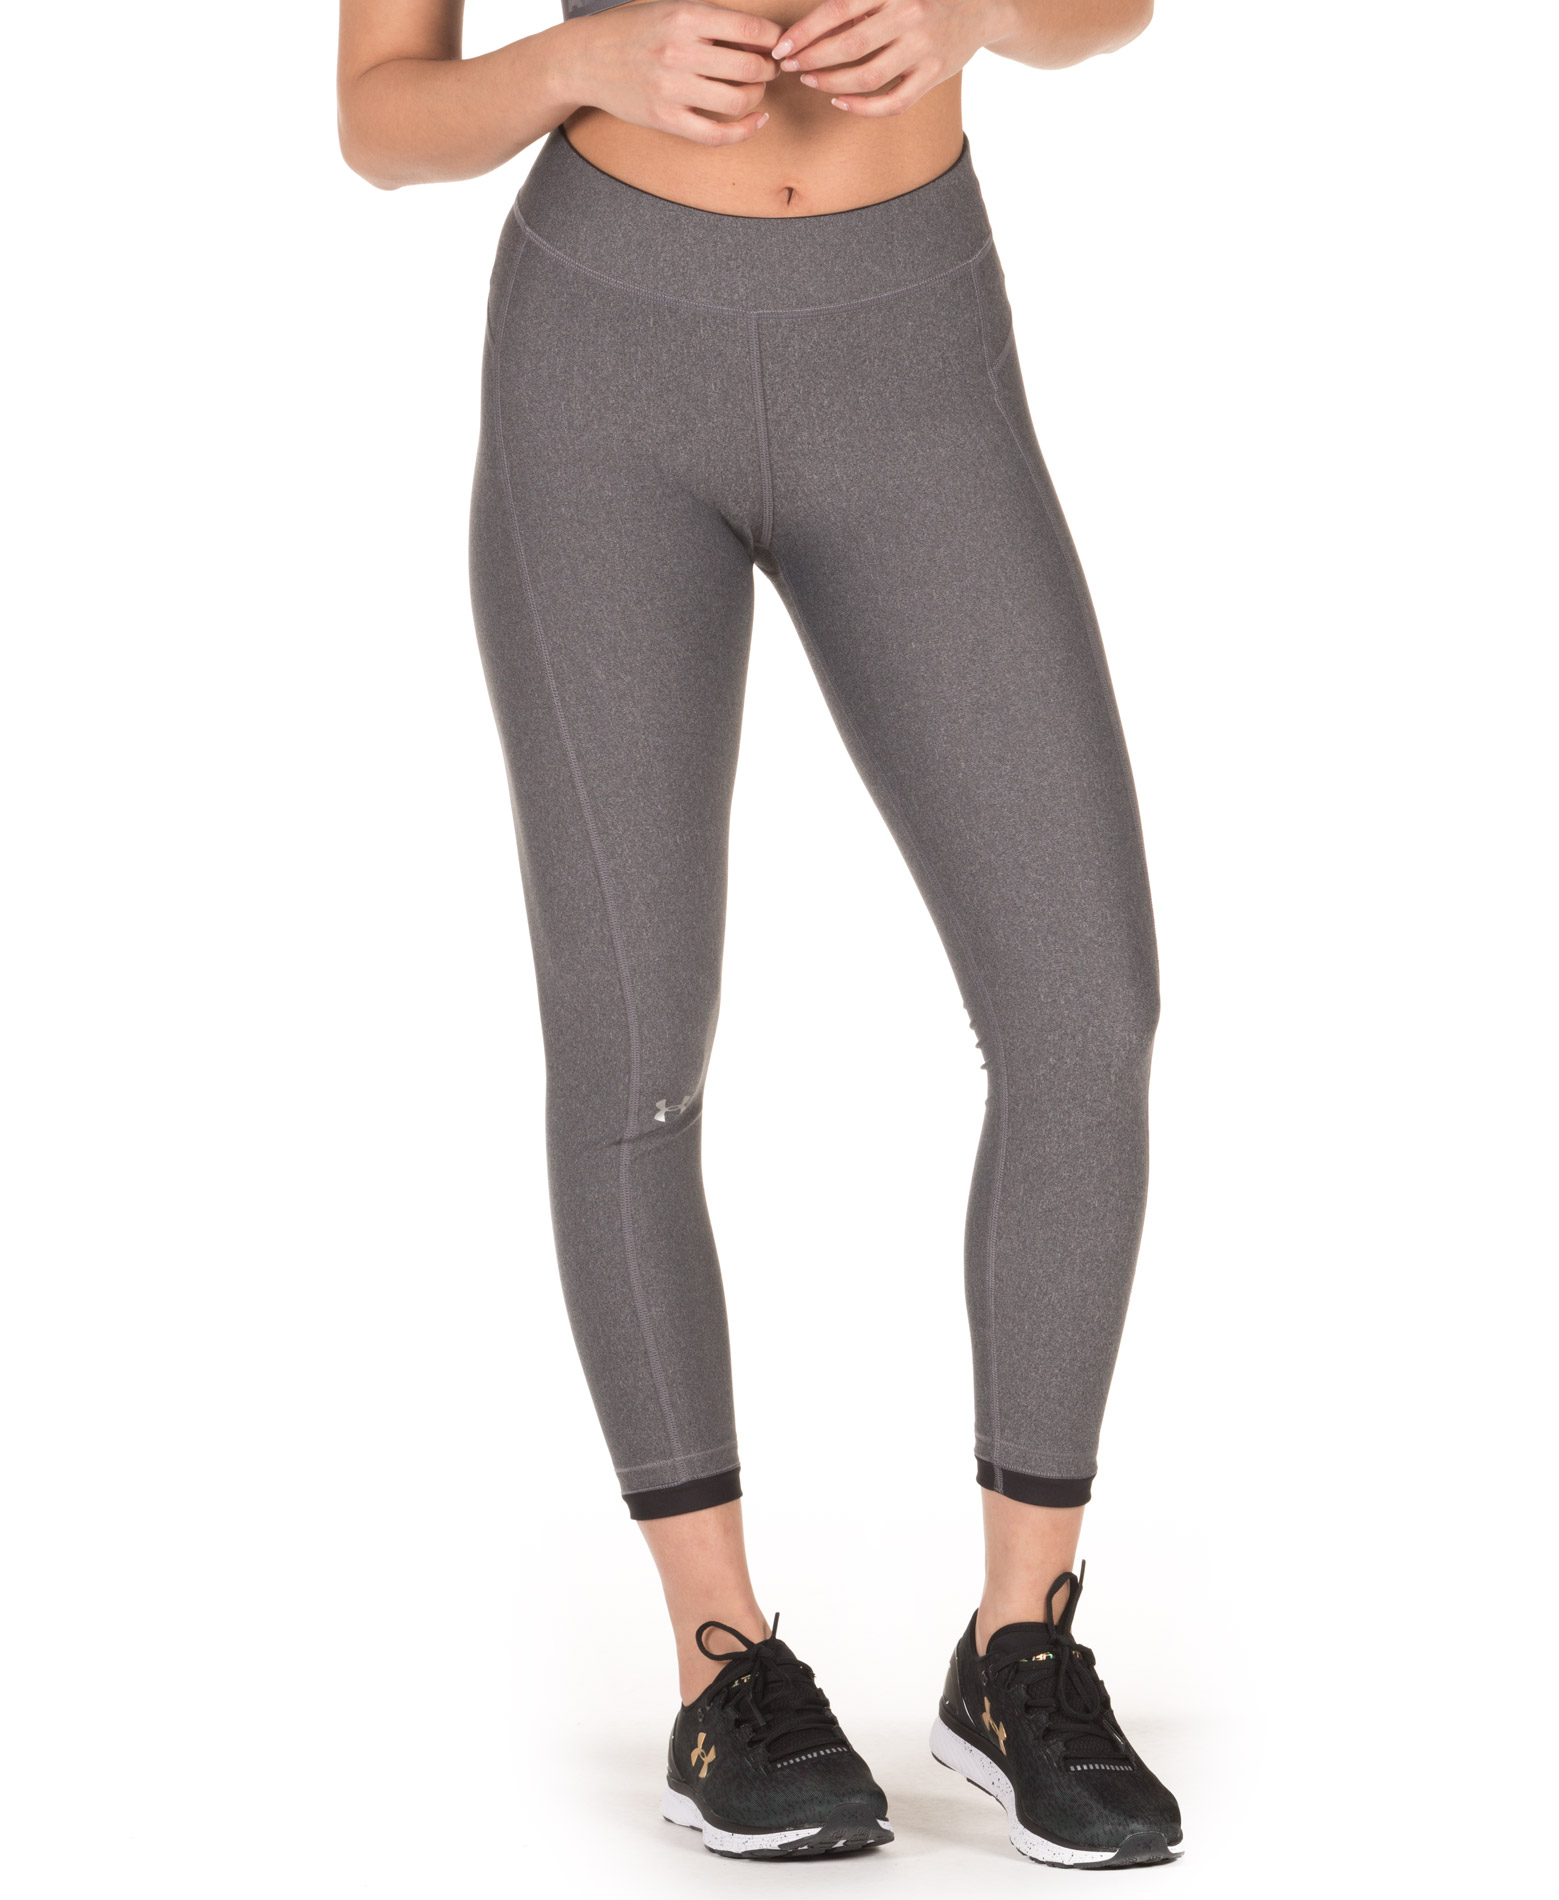 UNDER ARMOUR HG ARMOUR ANKLE CROP 1309628-019 Ανθρακί